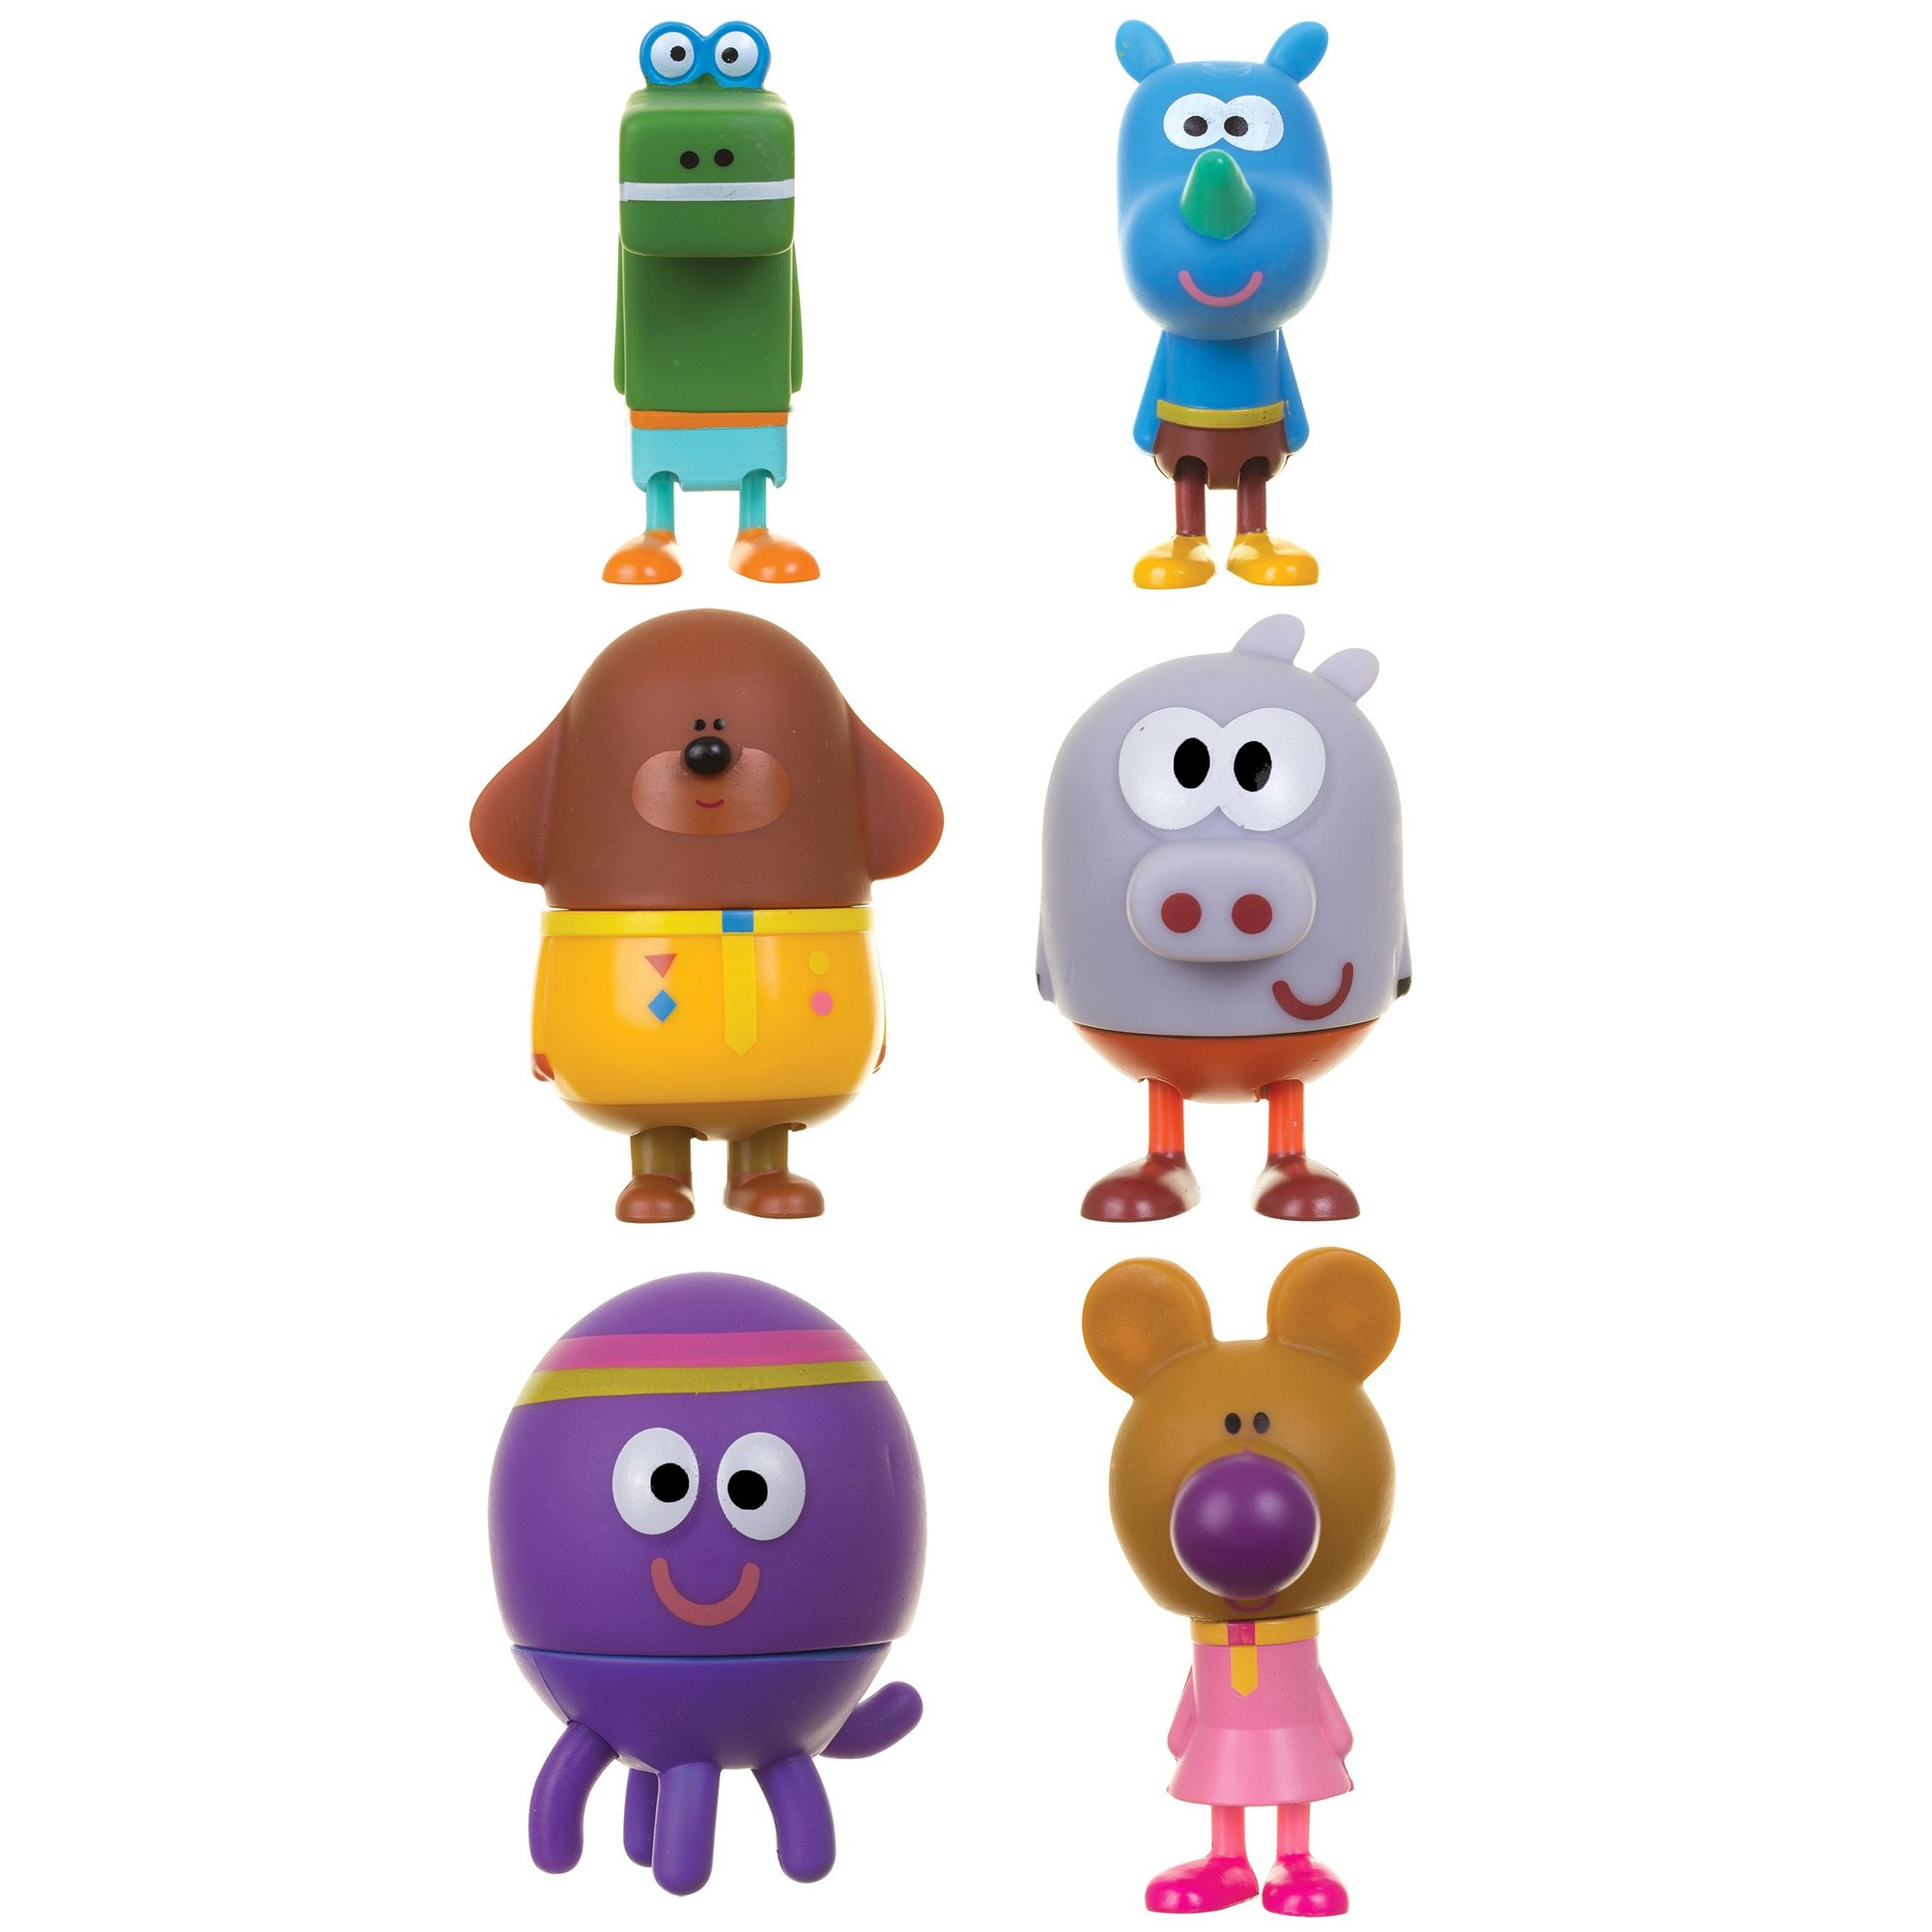 Image of Hey Duggee Figurine Set